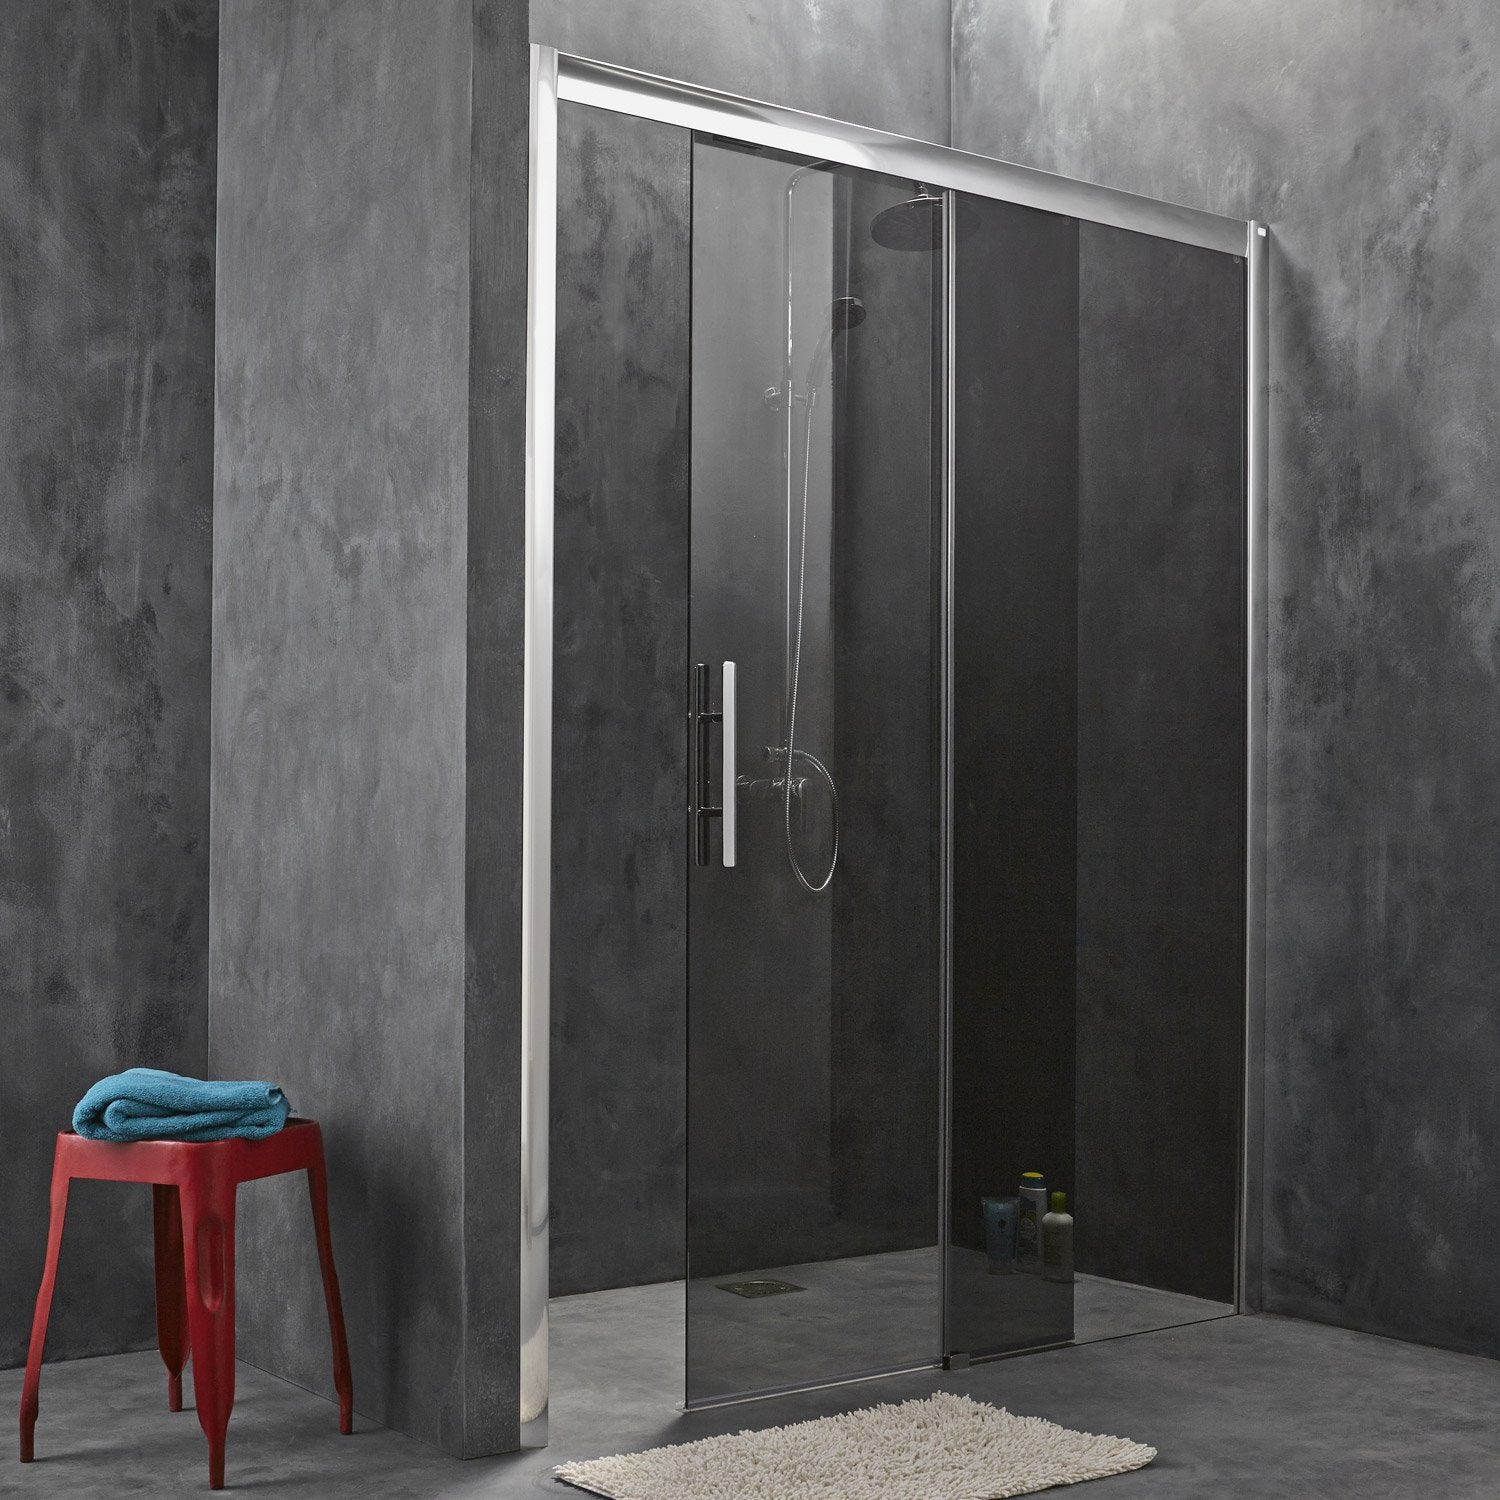 porte de douche coulissante 157 161 cm profil chrom adena leroy merlin. Black Bedroom Furniture Sets. Home Design Ideas